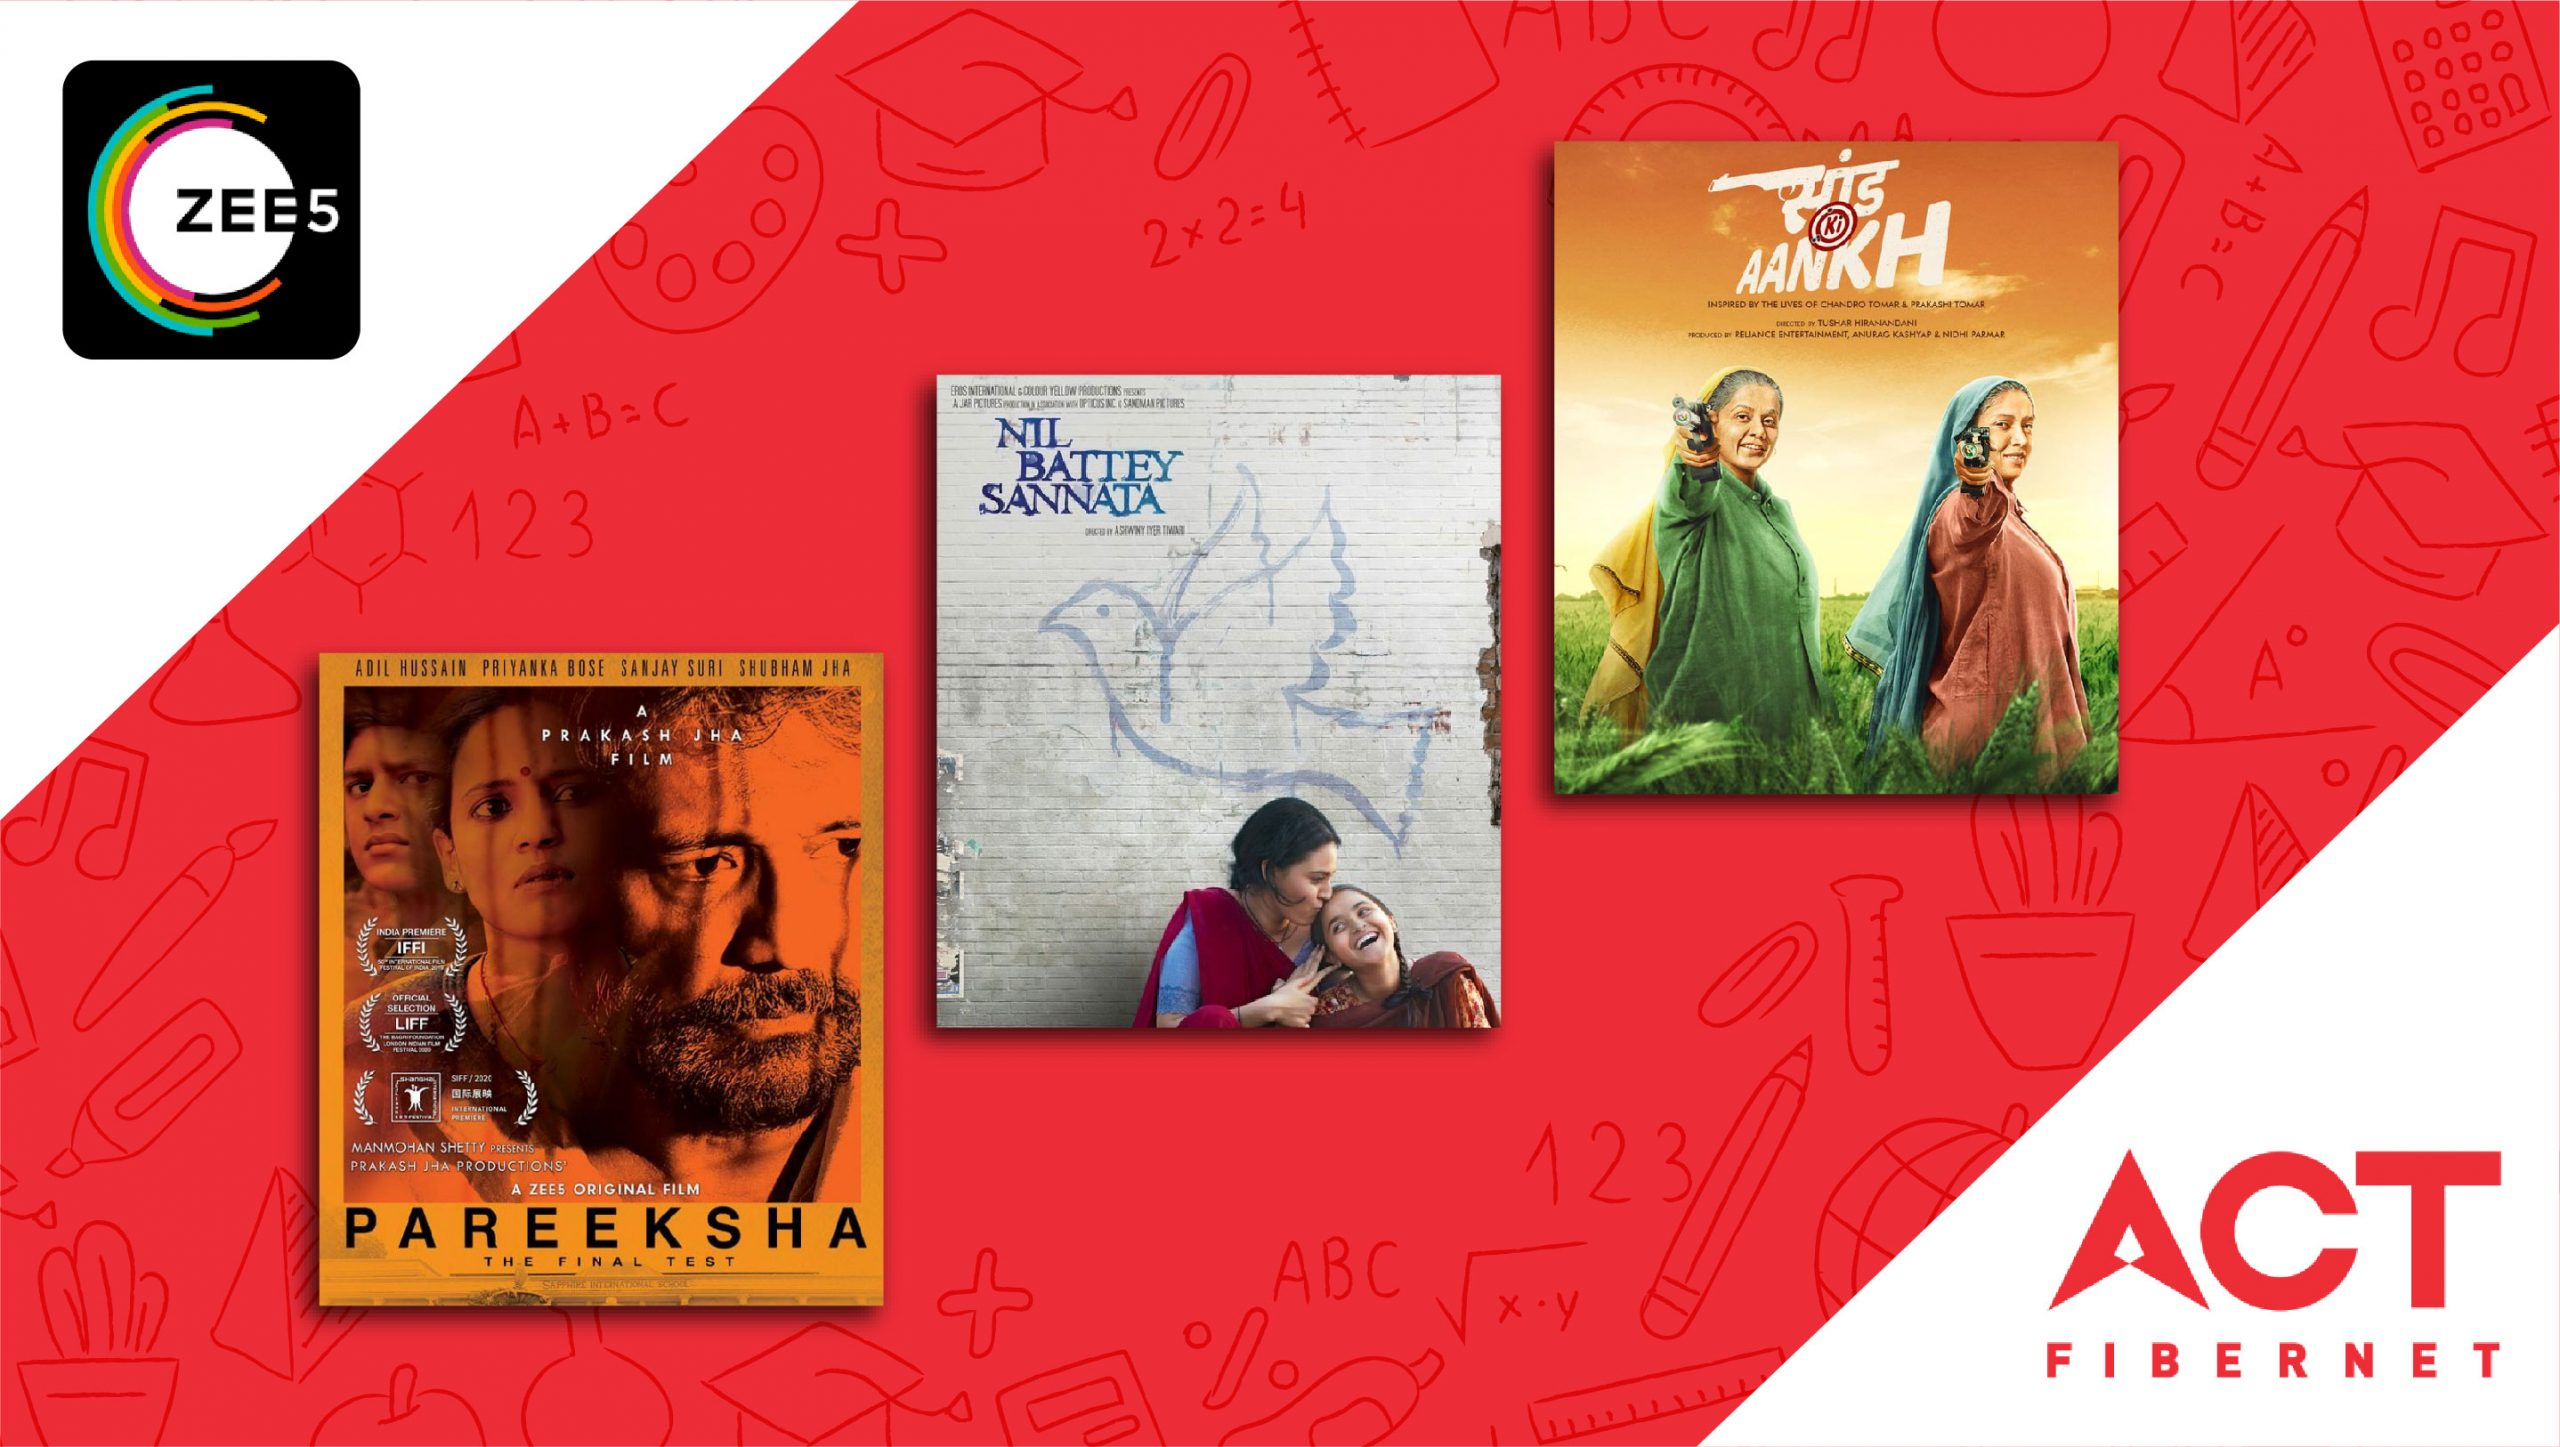 Teacher's Day Special: Nil Battey Sannata, Pareeksha, Kennedy Club – Films You Should Watch On ZEE5 With Your ACT Connection